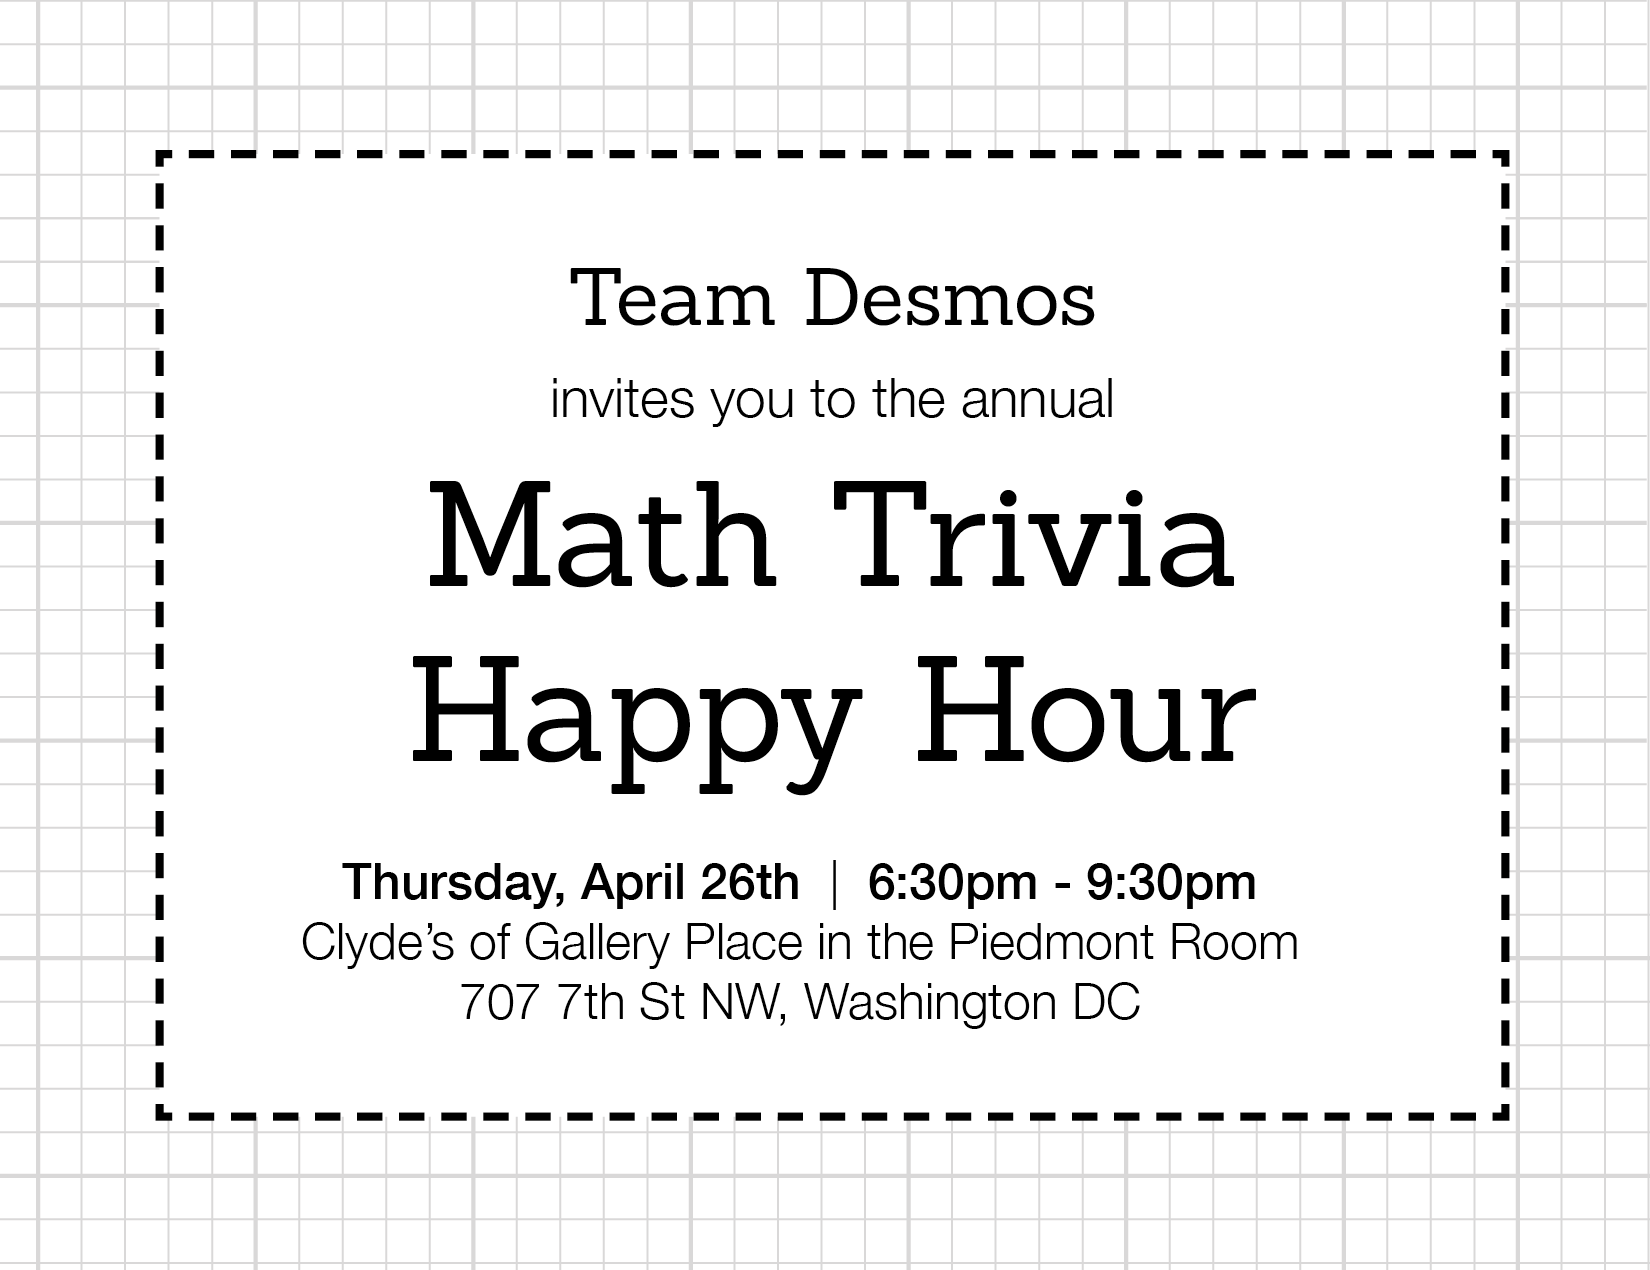 The Desmos Math Trivia Happy Hour is Thursday April 26 from 6:30-9:30PM at Clyde's of Gallery Place in the Piedmont Room 707 7th St NW, Washington DC.